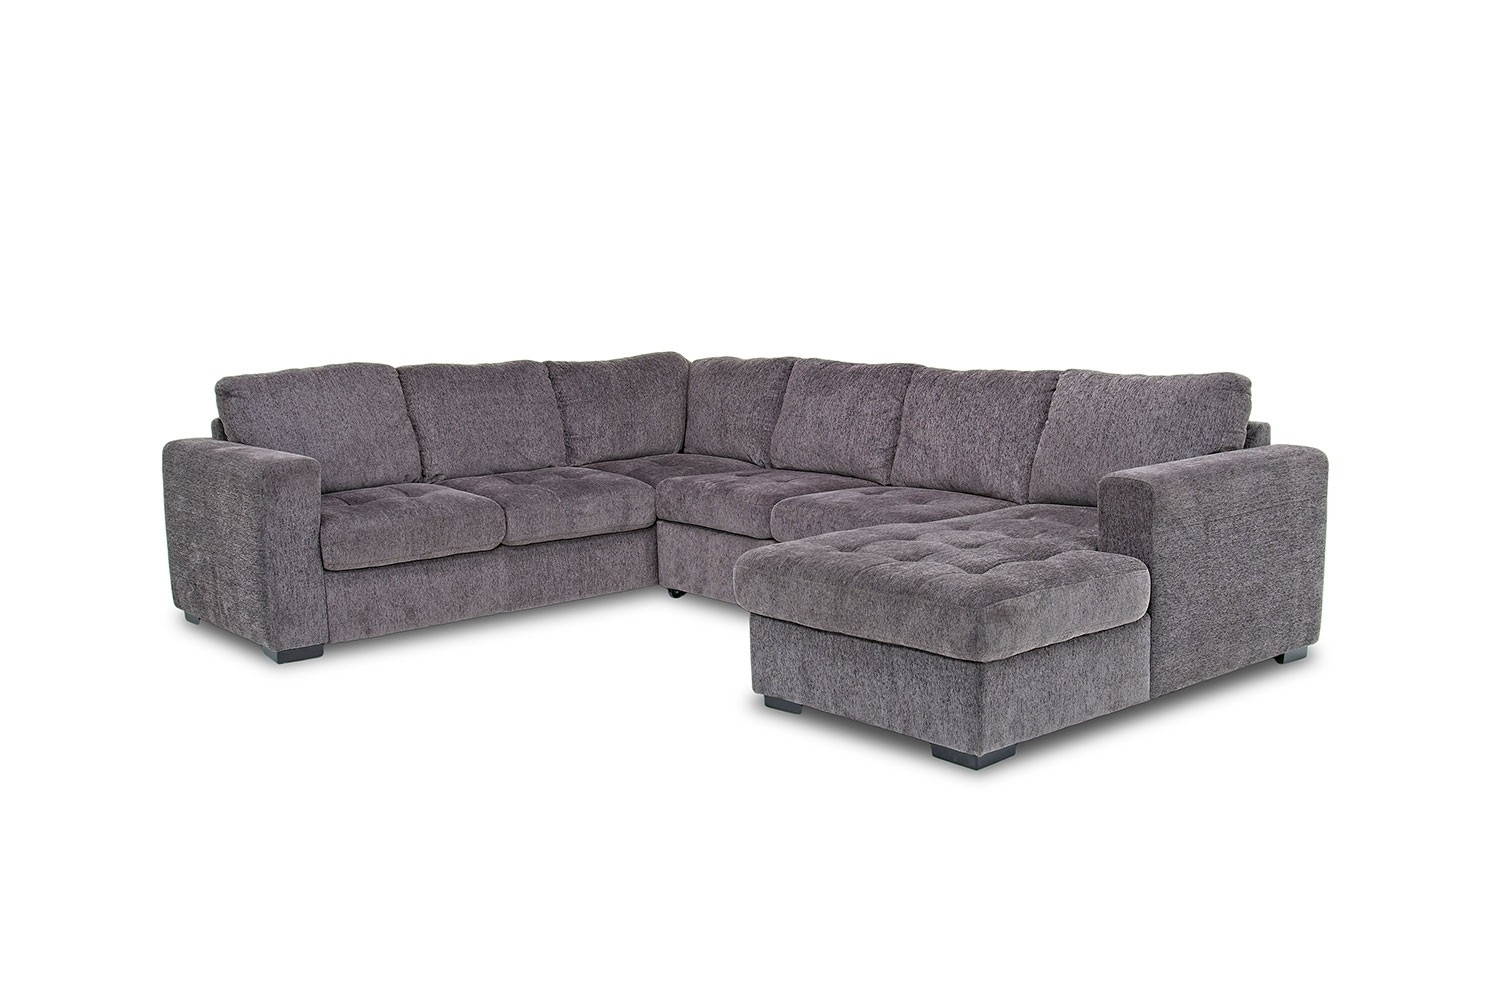 Claire 3-Piece Right-Facing Chaise Sectional in Gray | Mor Furniture ...